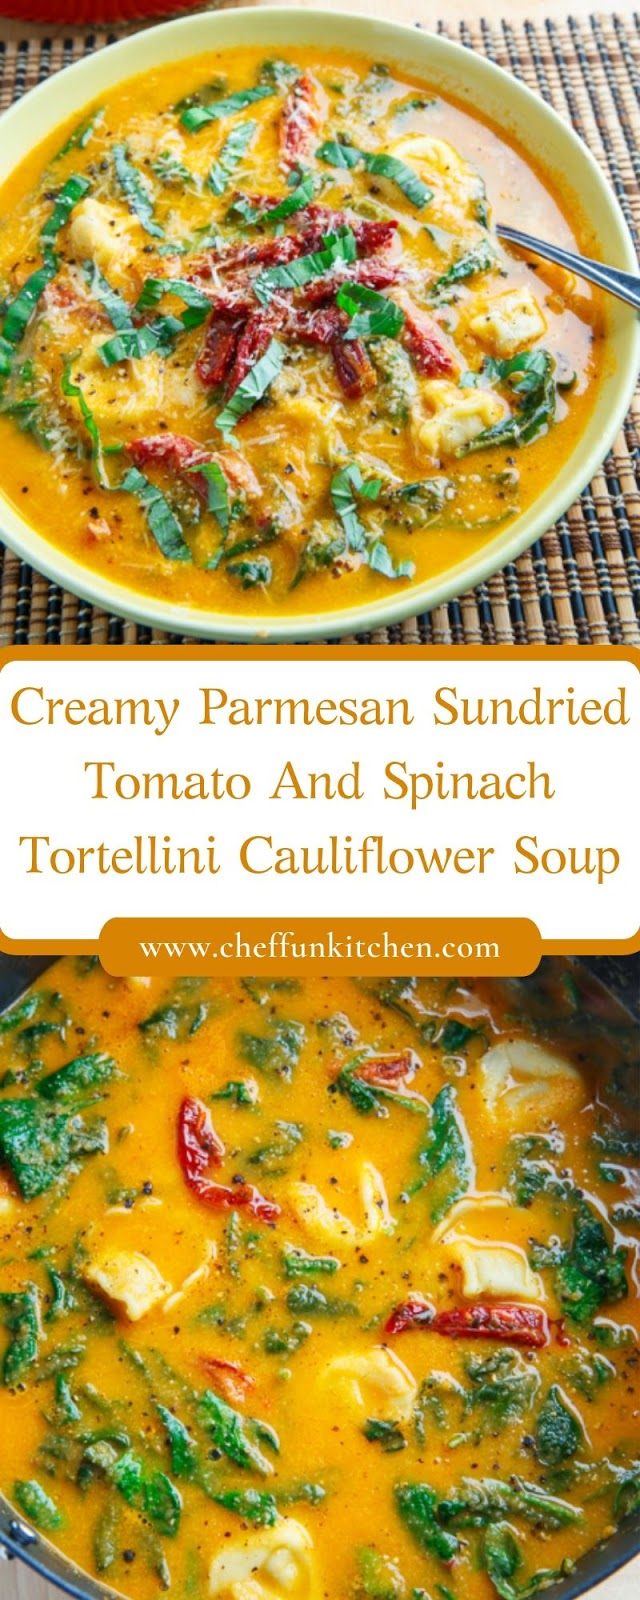 Creamy Parmesan Sundried Tomato And Spinach Tortellini Cauliflower Soup